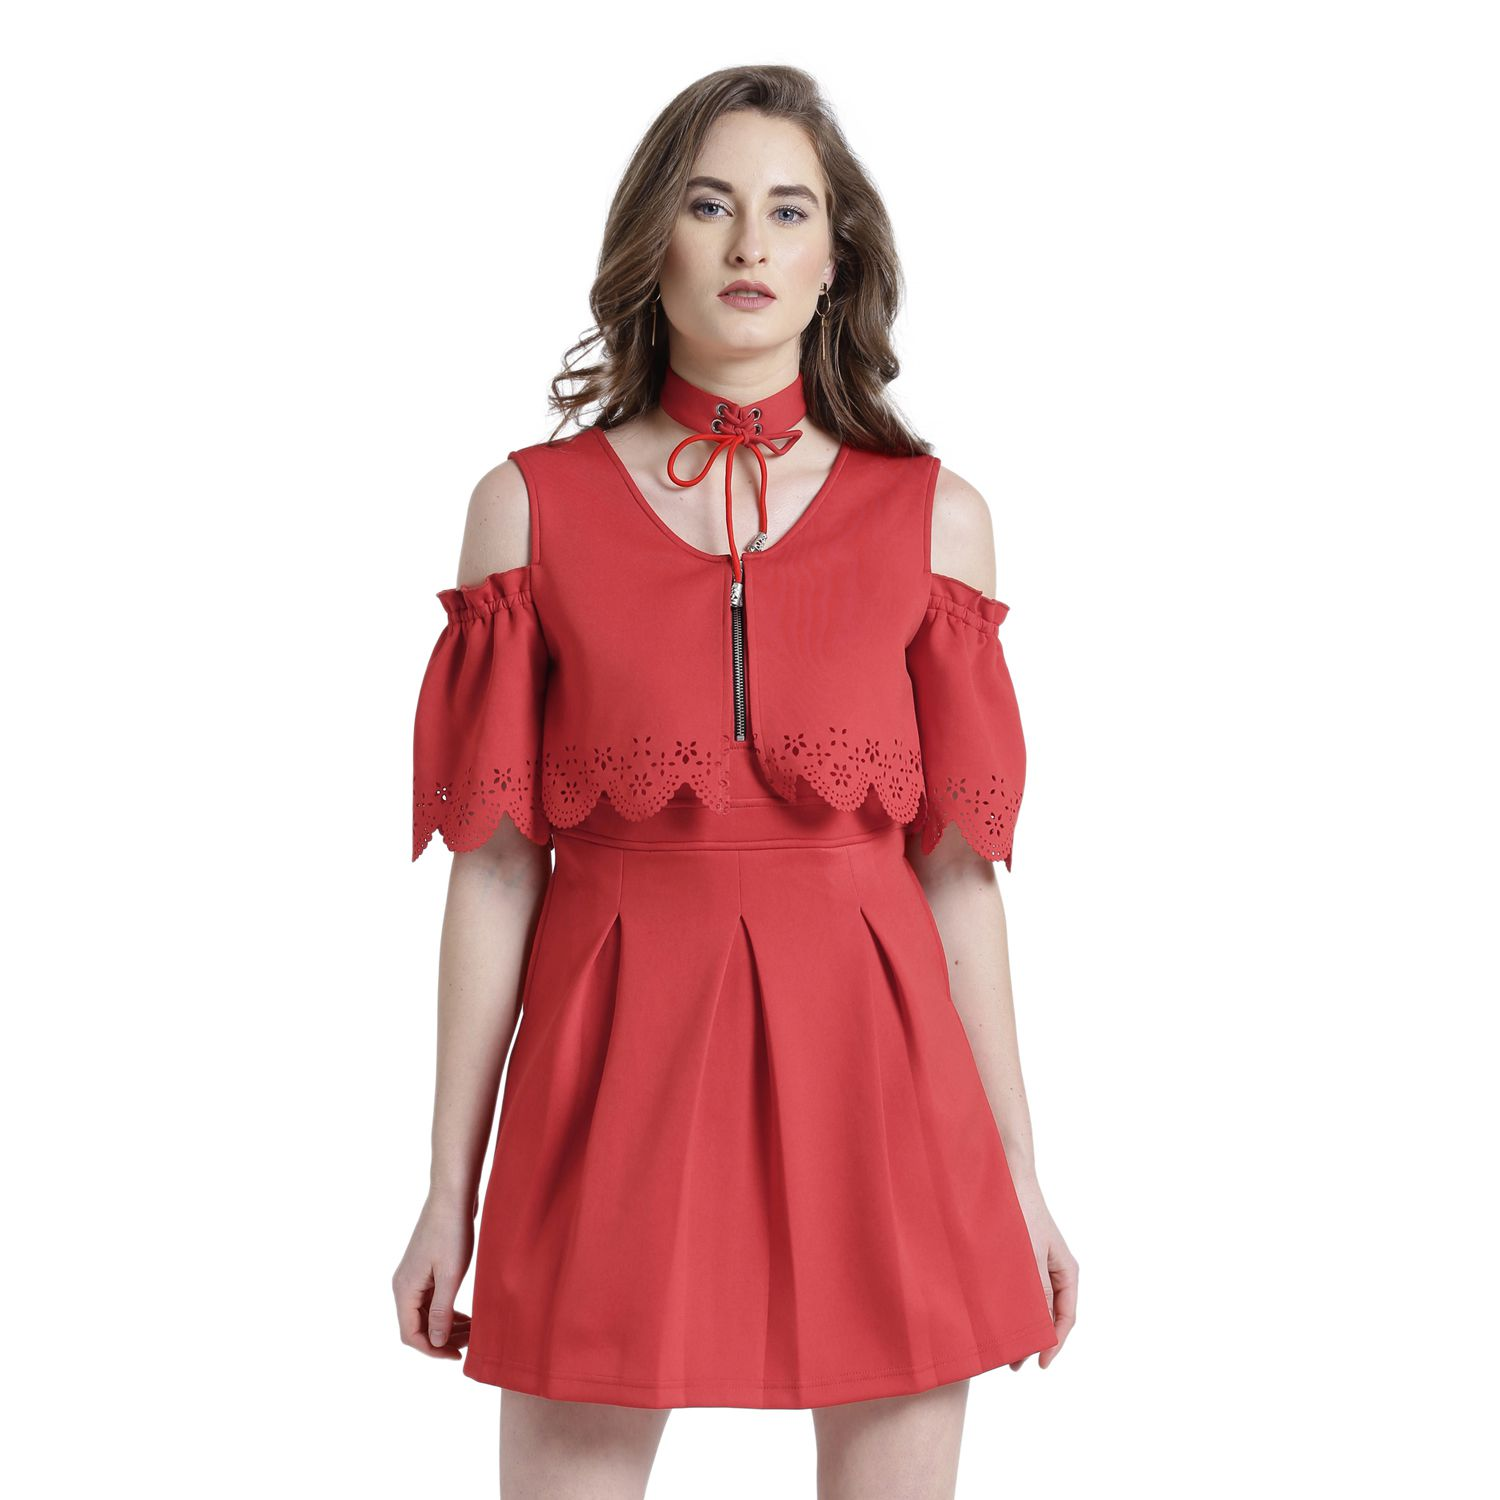 a9aad1bd707f Texco Polyester Red Skater Dress - Buy Texco Polyester Red Skater Dress  Online at Best Prices in India on Snapdeal